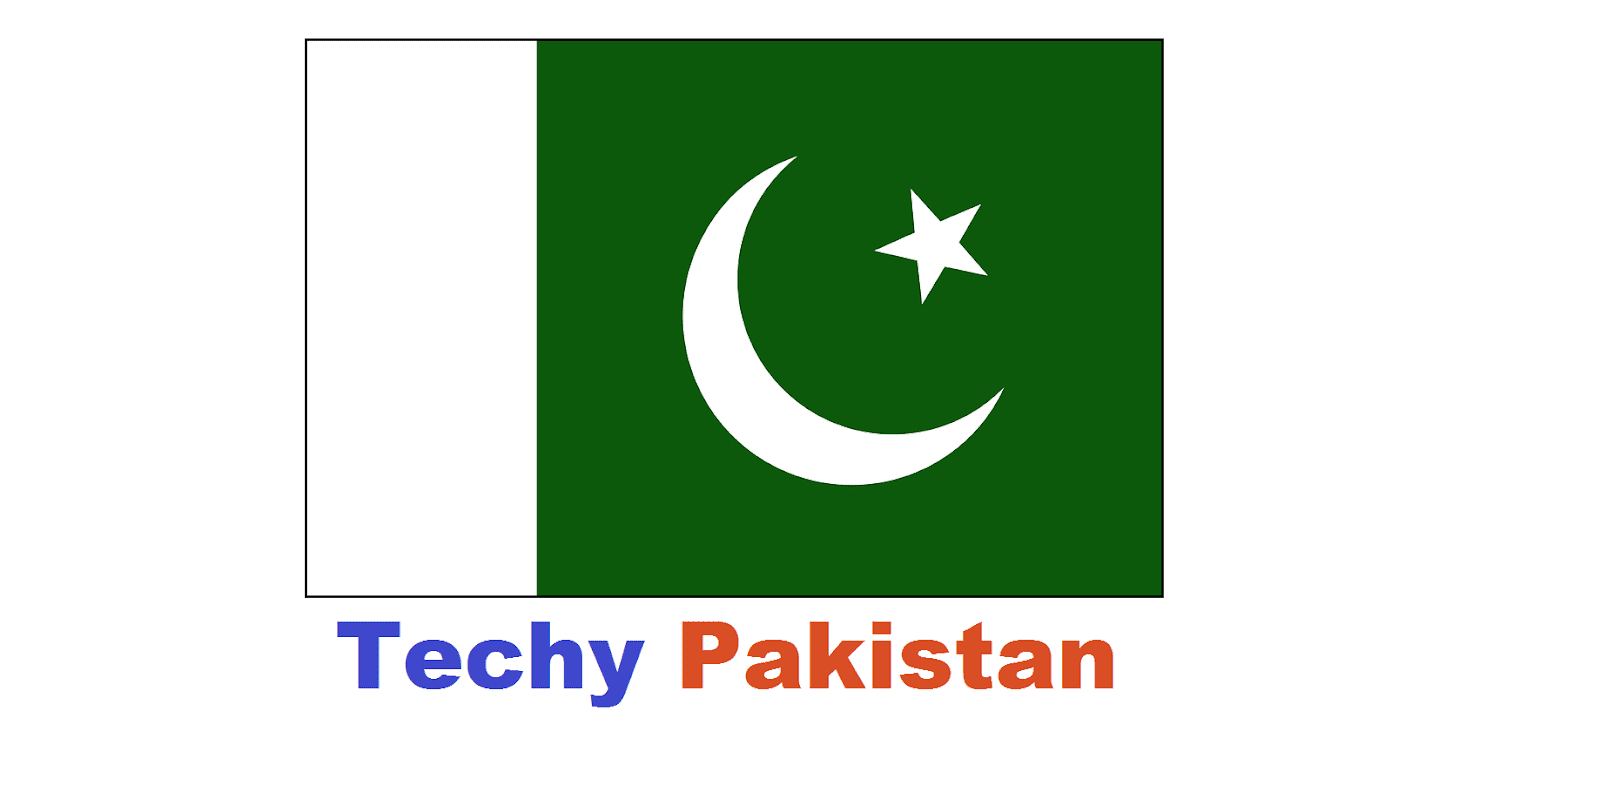 Techy Pakistan